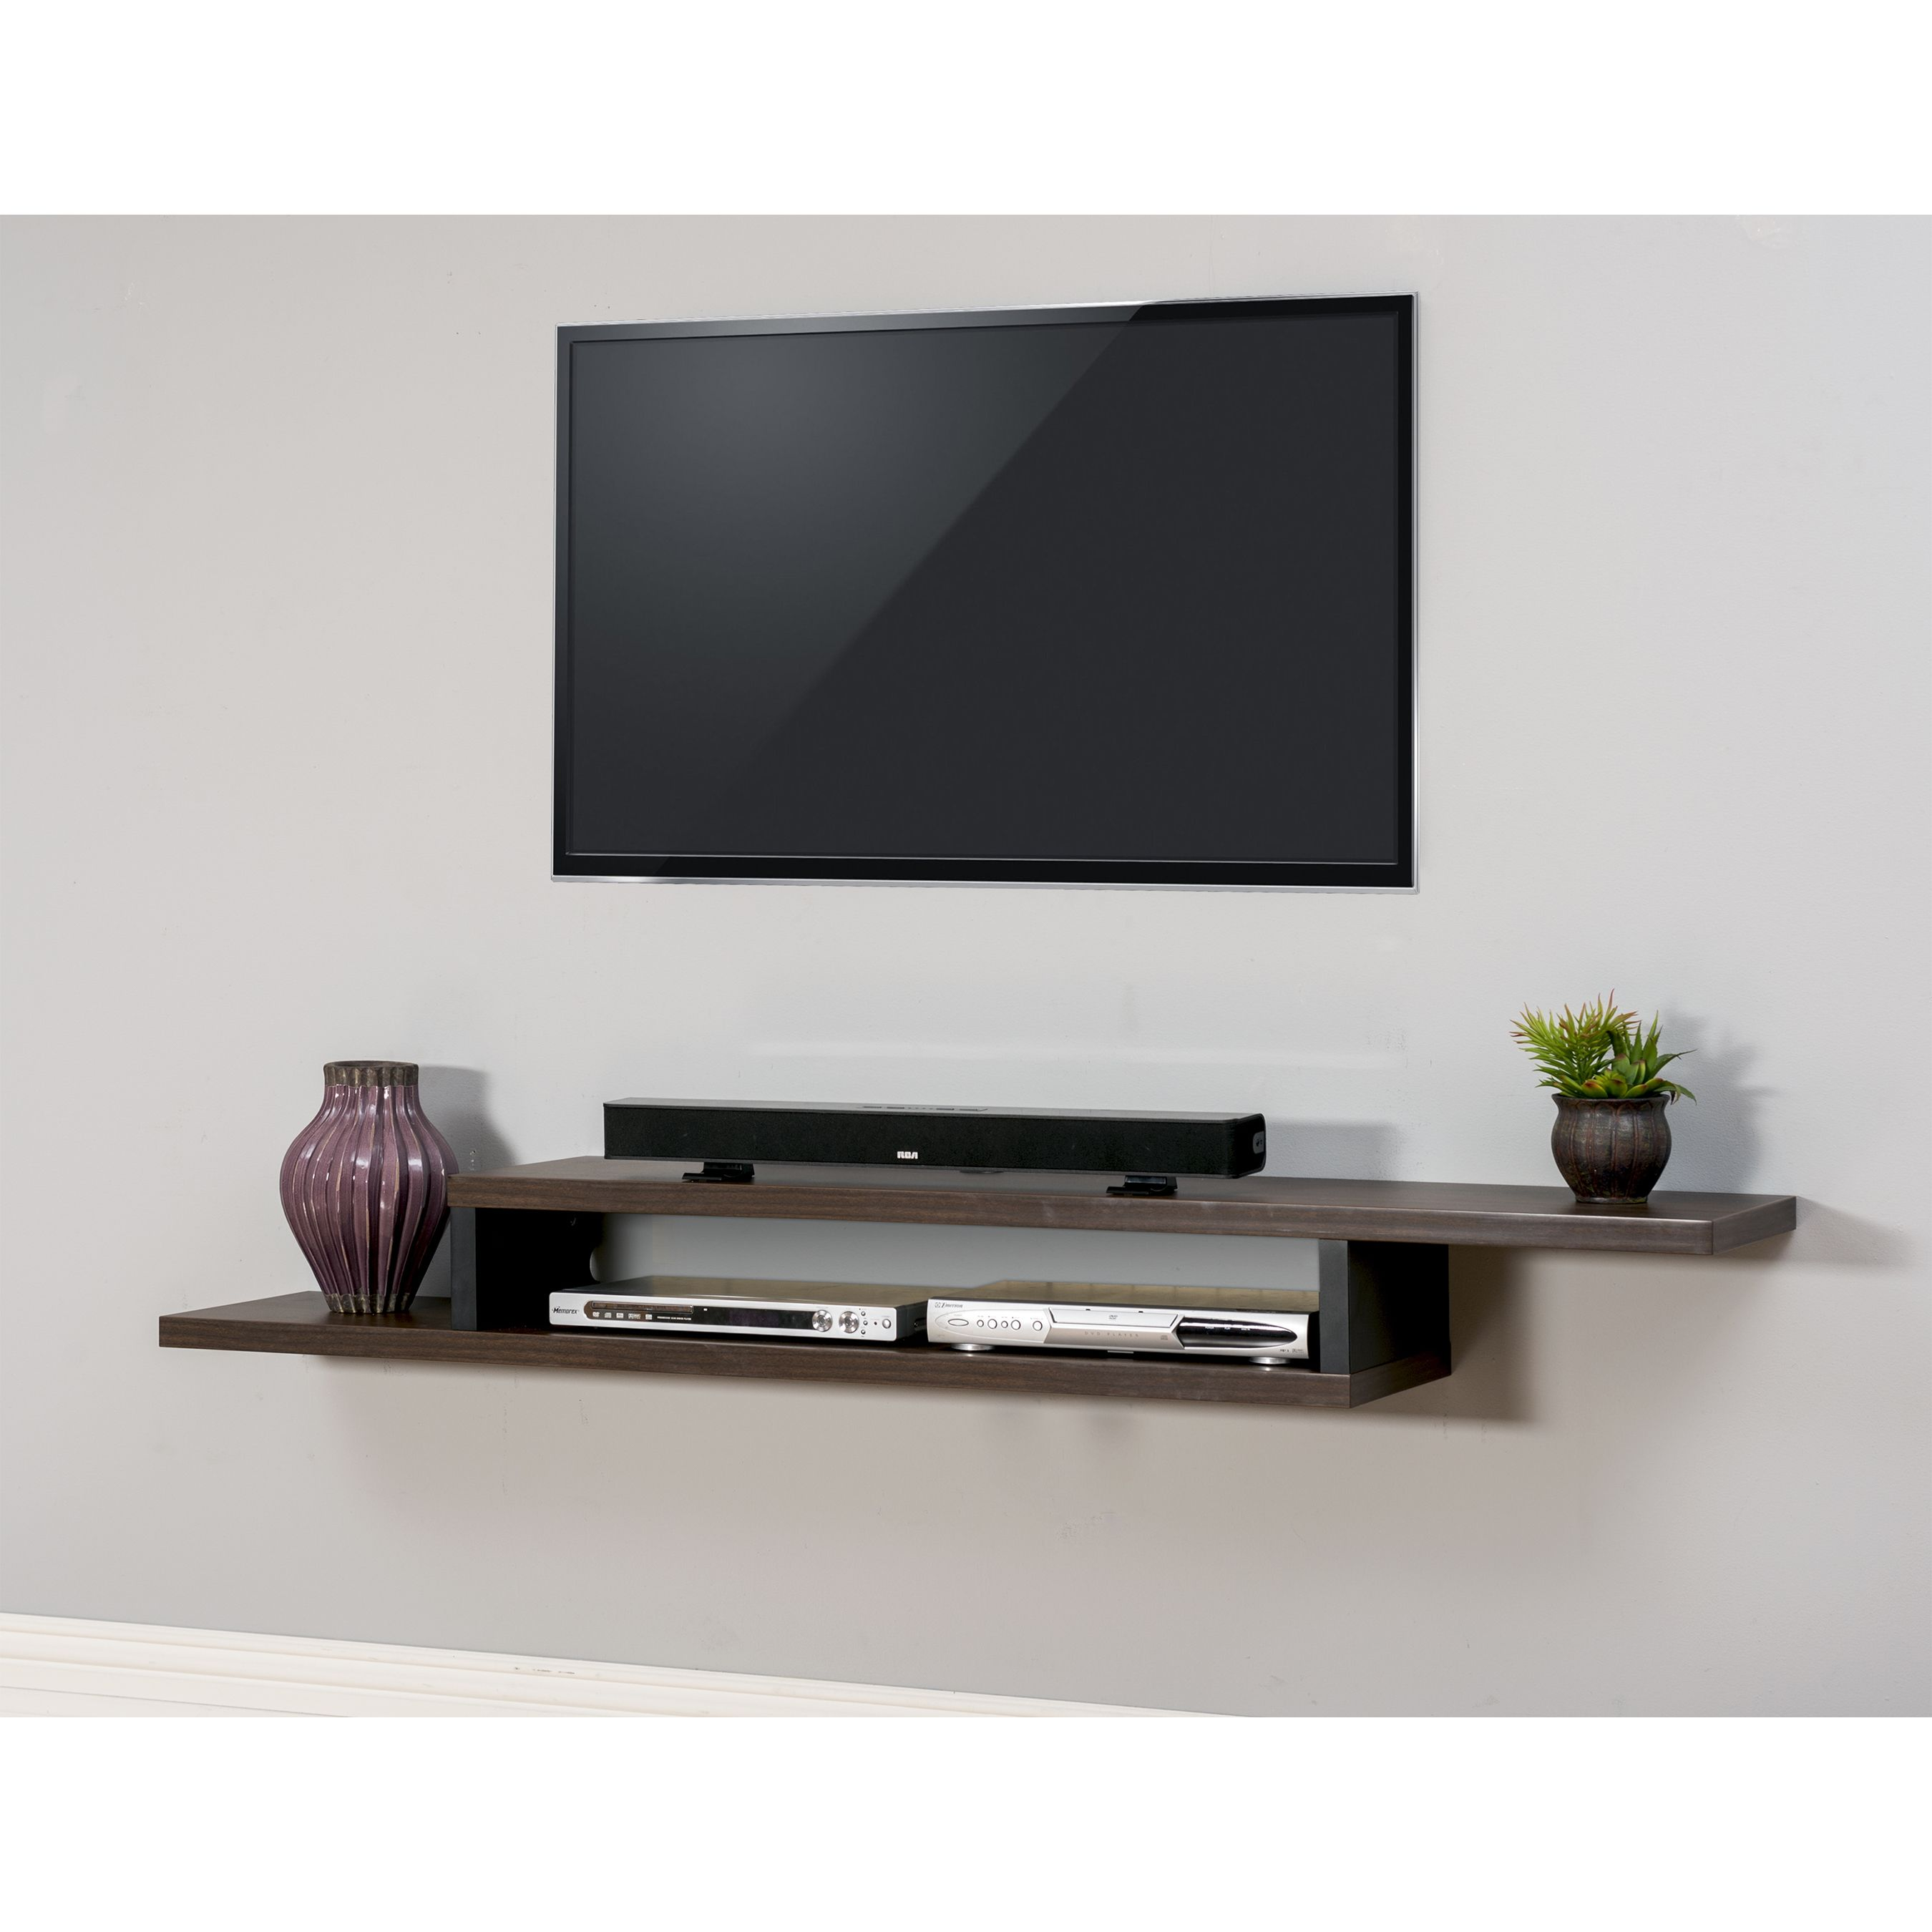 Best 25 tv mount with shelf ideas on pinterest 3 shelf - Wall mount tv ideas for living room ...